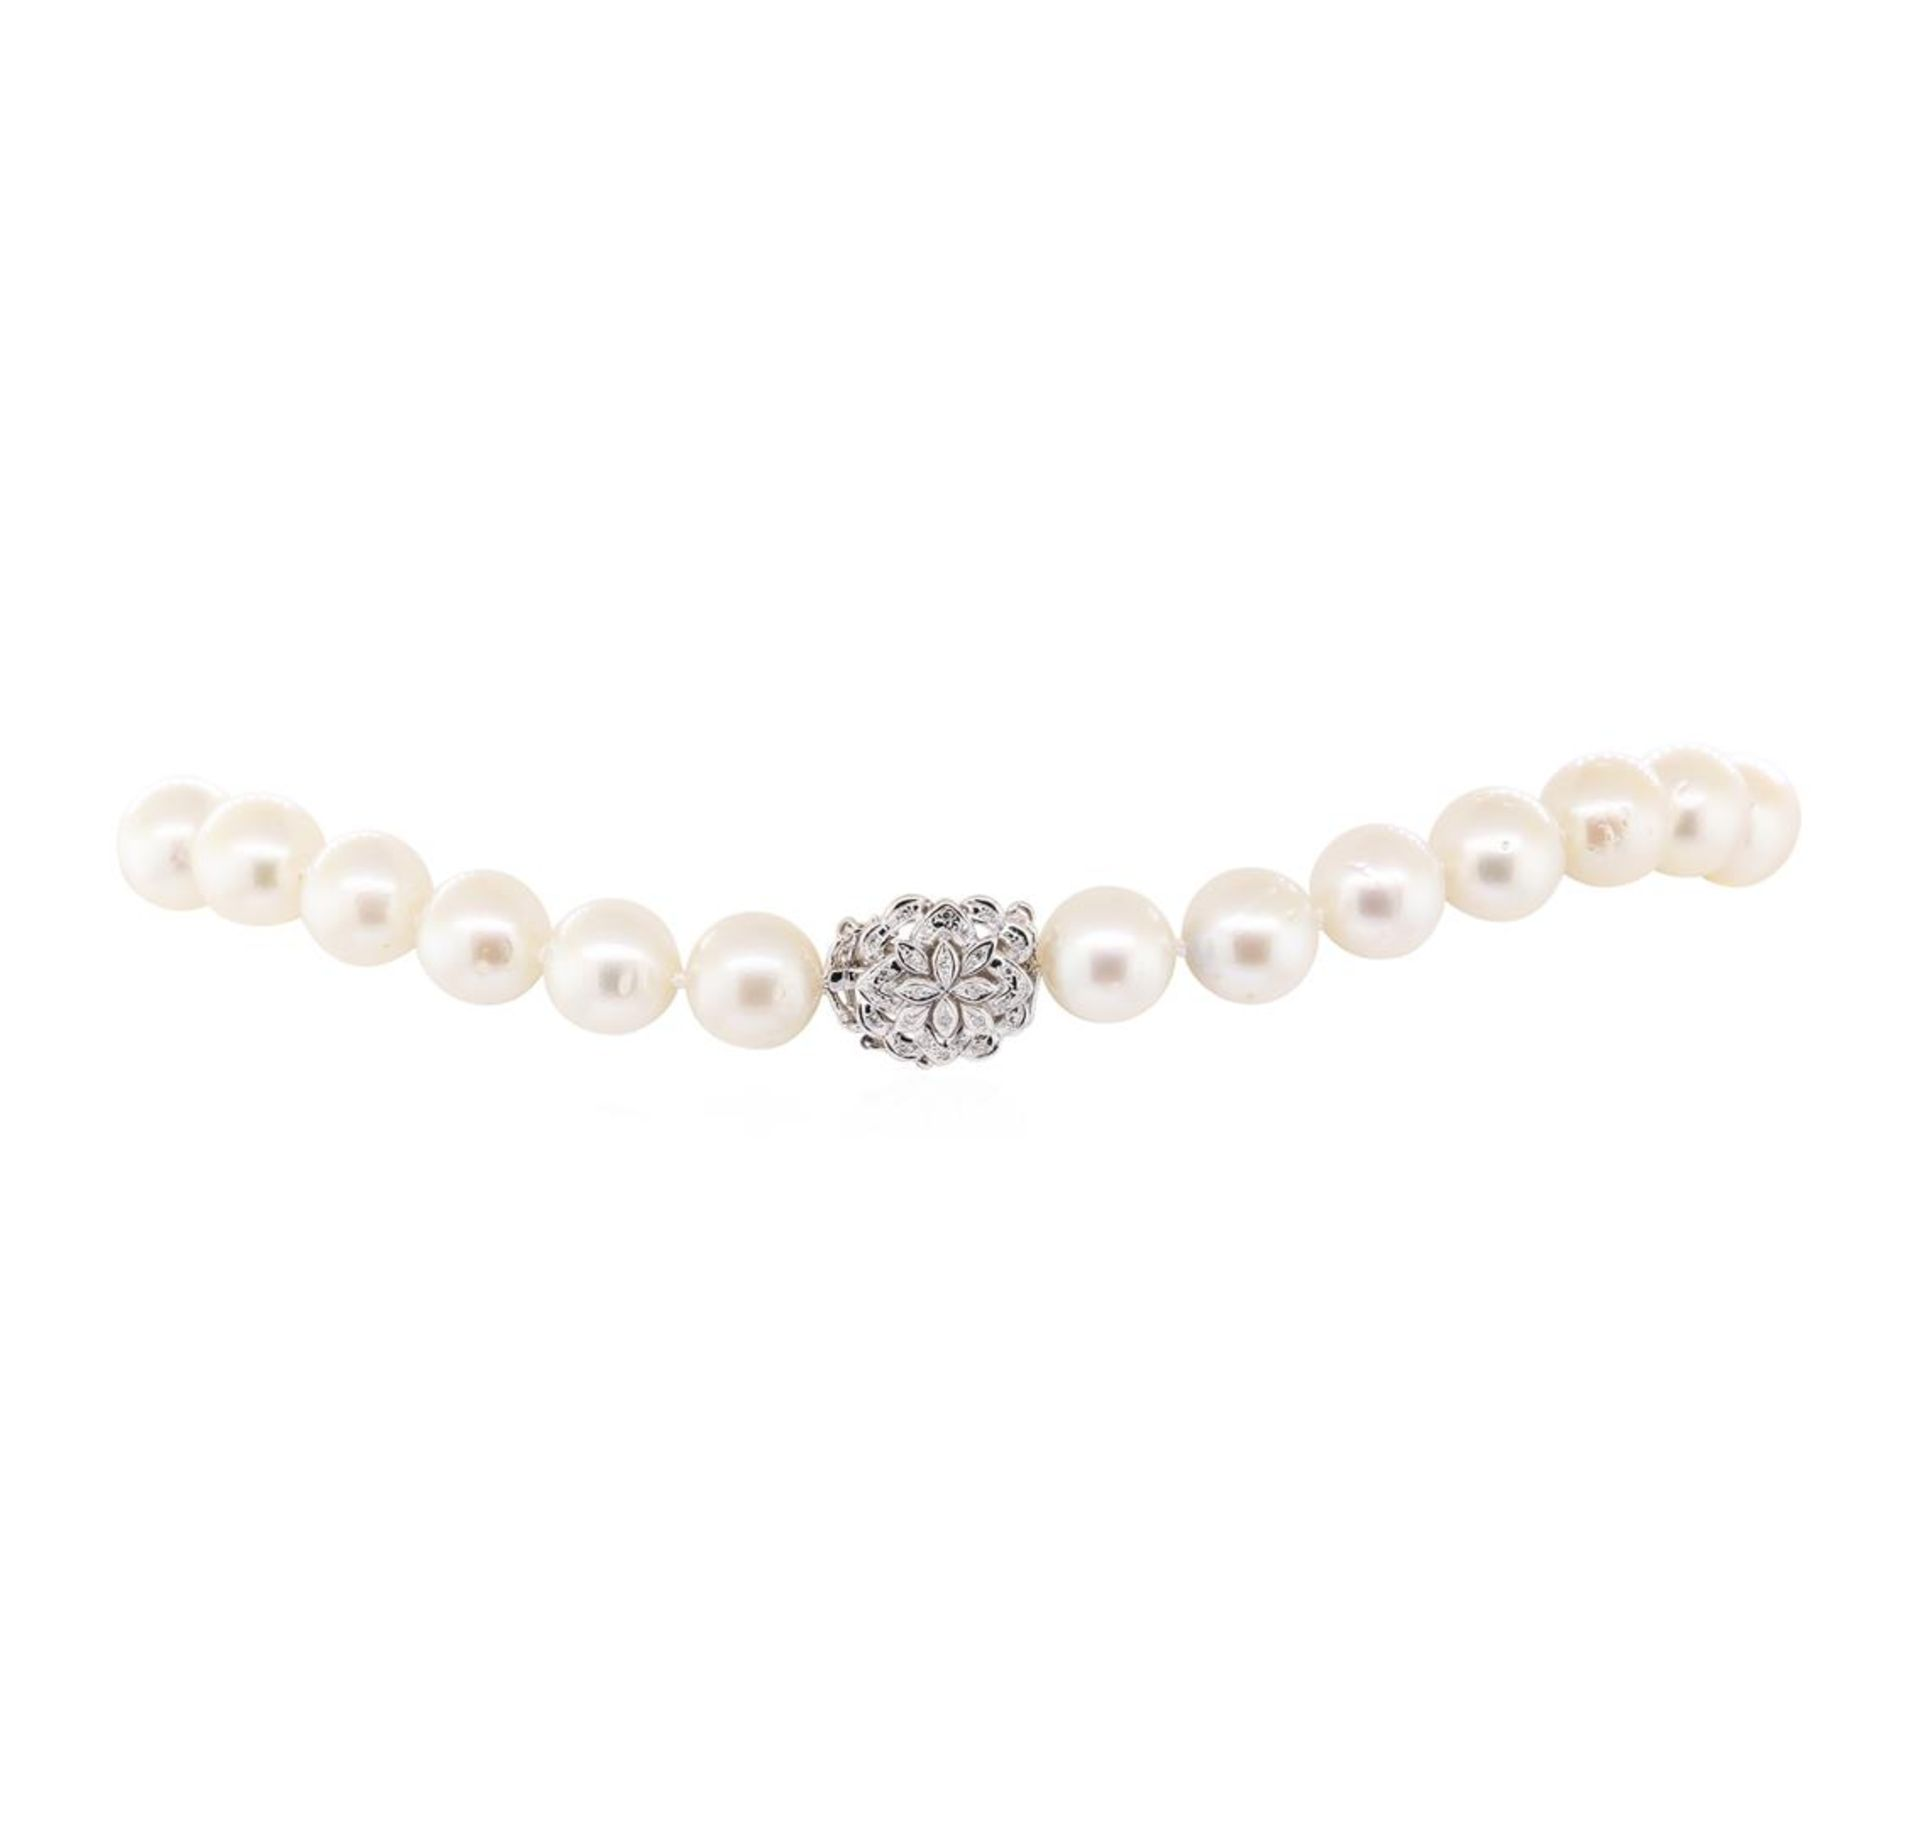 0.60 ctw Diamond and South Sea Pearl Necklace - Image 3 of 4